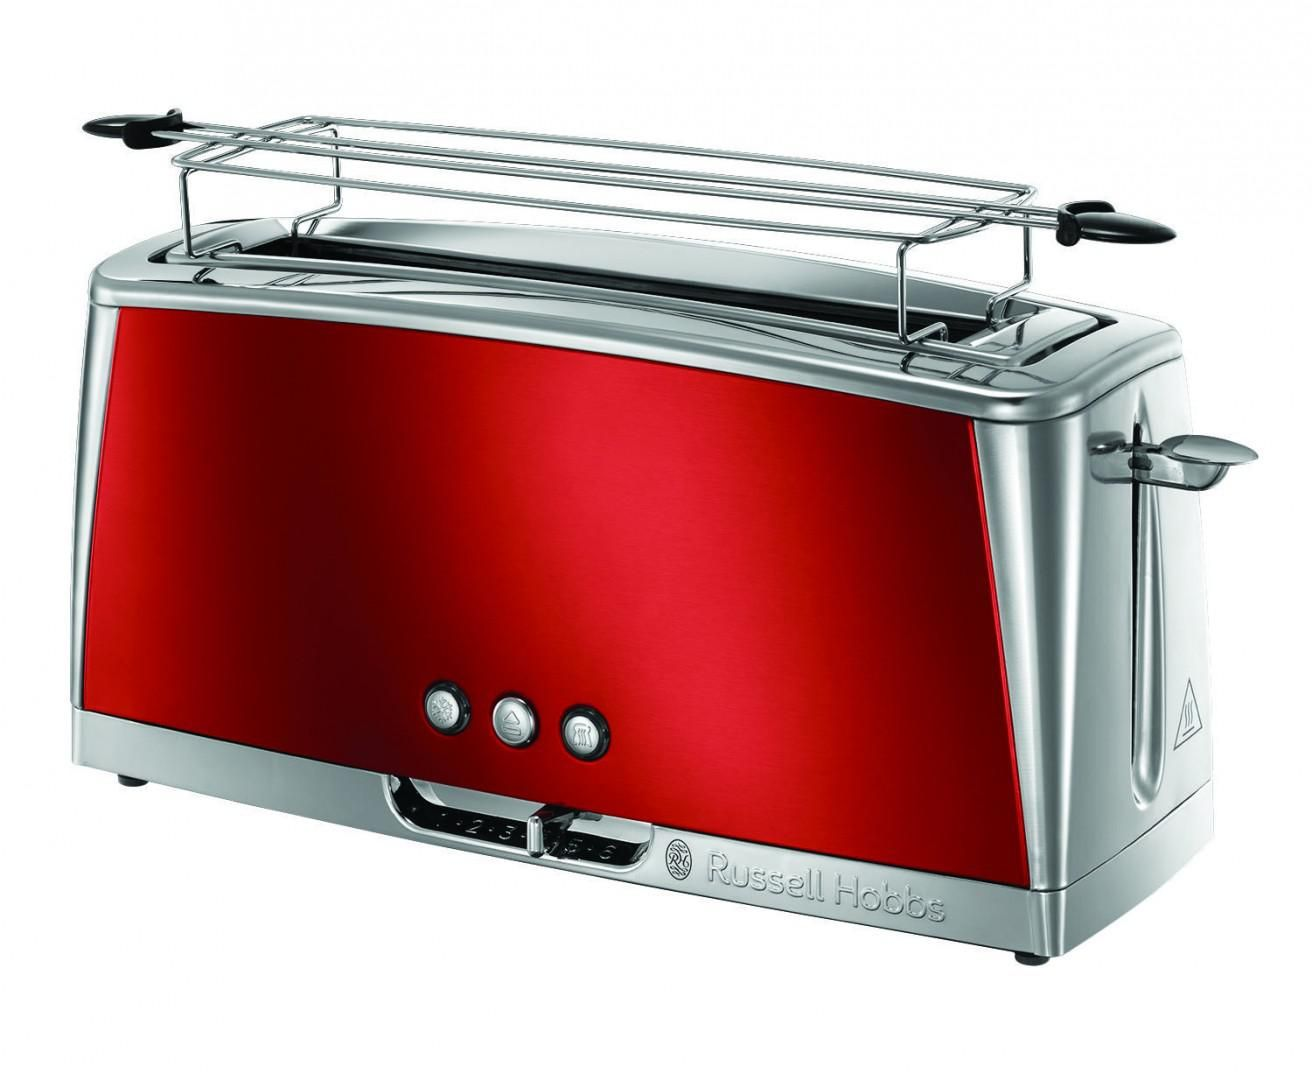 Toster Russell Hobbs Luna Solar Red Long Slot (23250-56) Tosteris